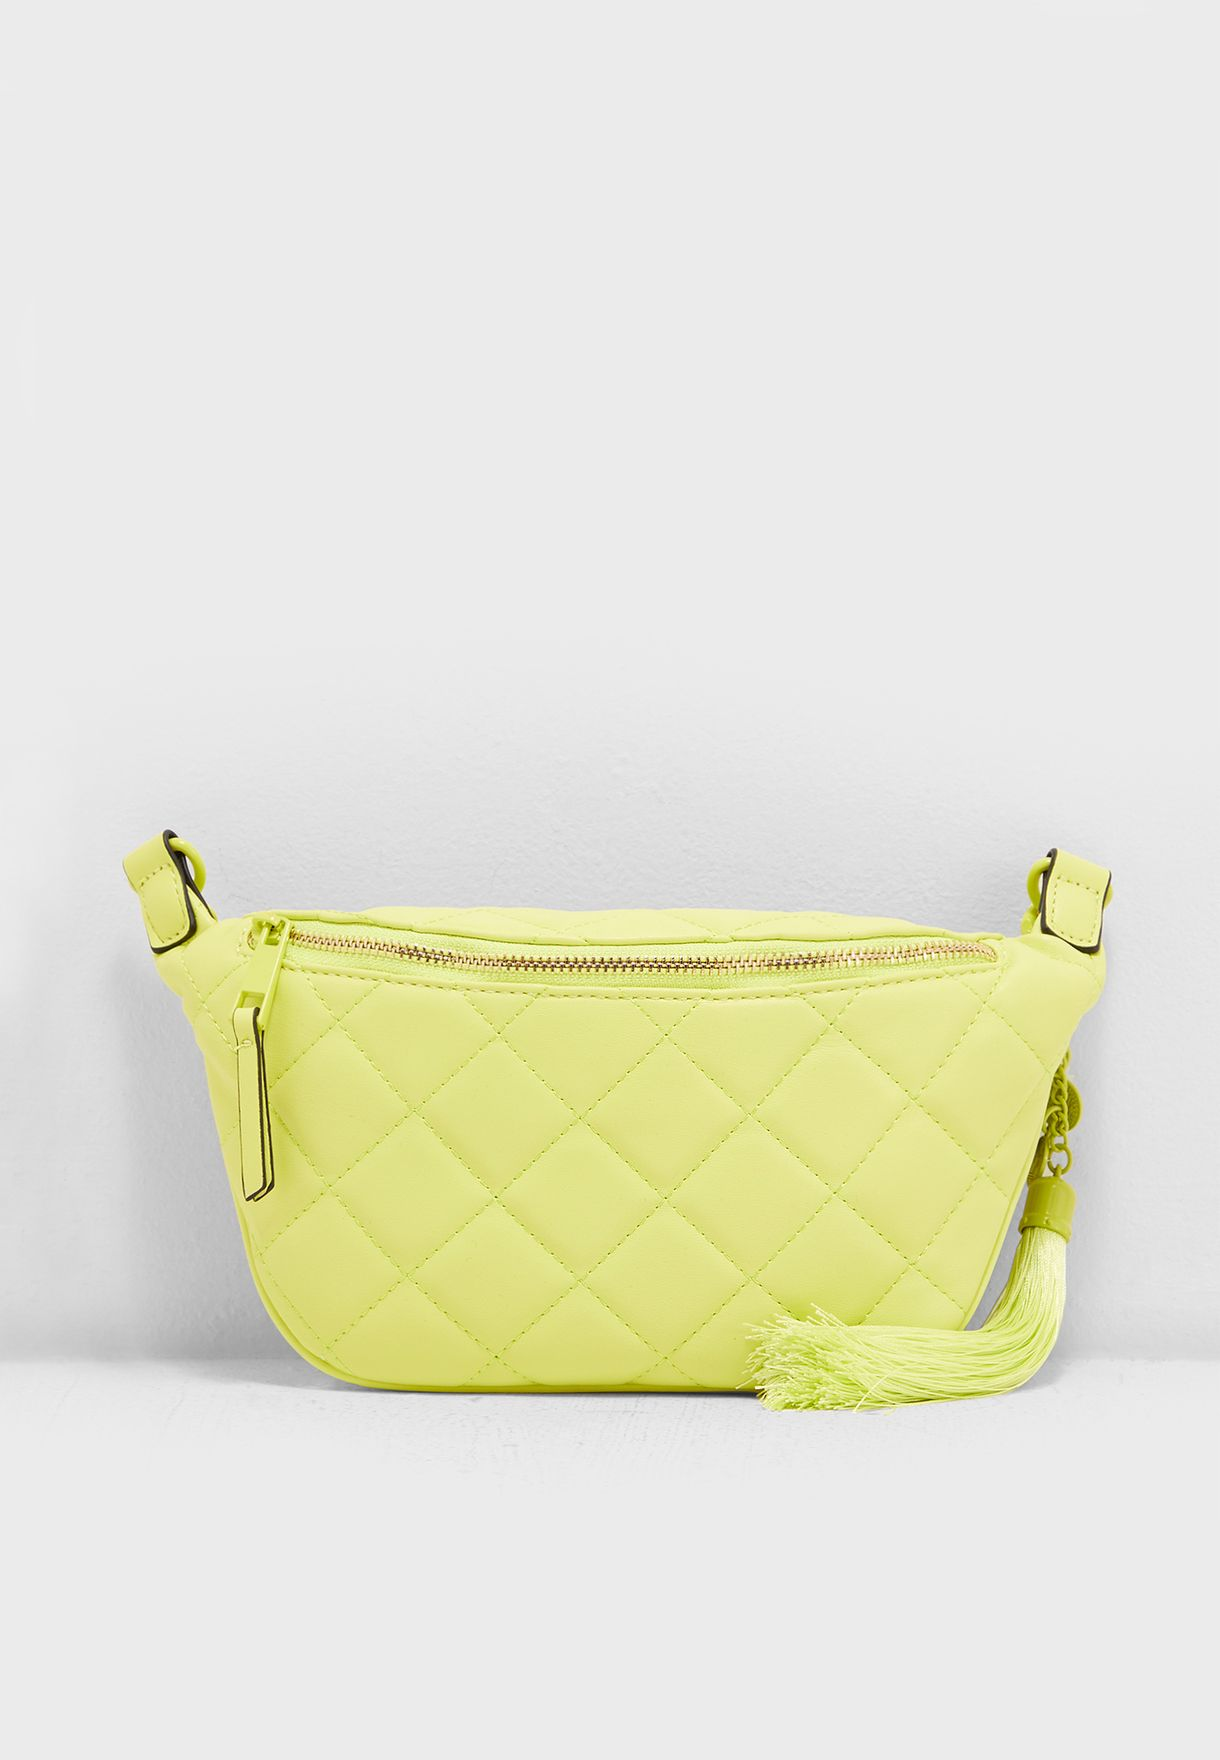 Shop Aldo yellow Brilalle Fanny Pack Crossbody BRILALLE67 for Women ... eee8af31a1034